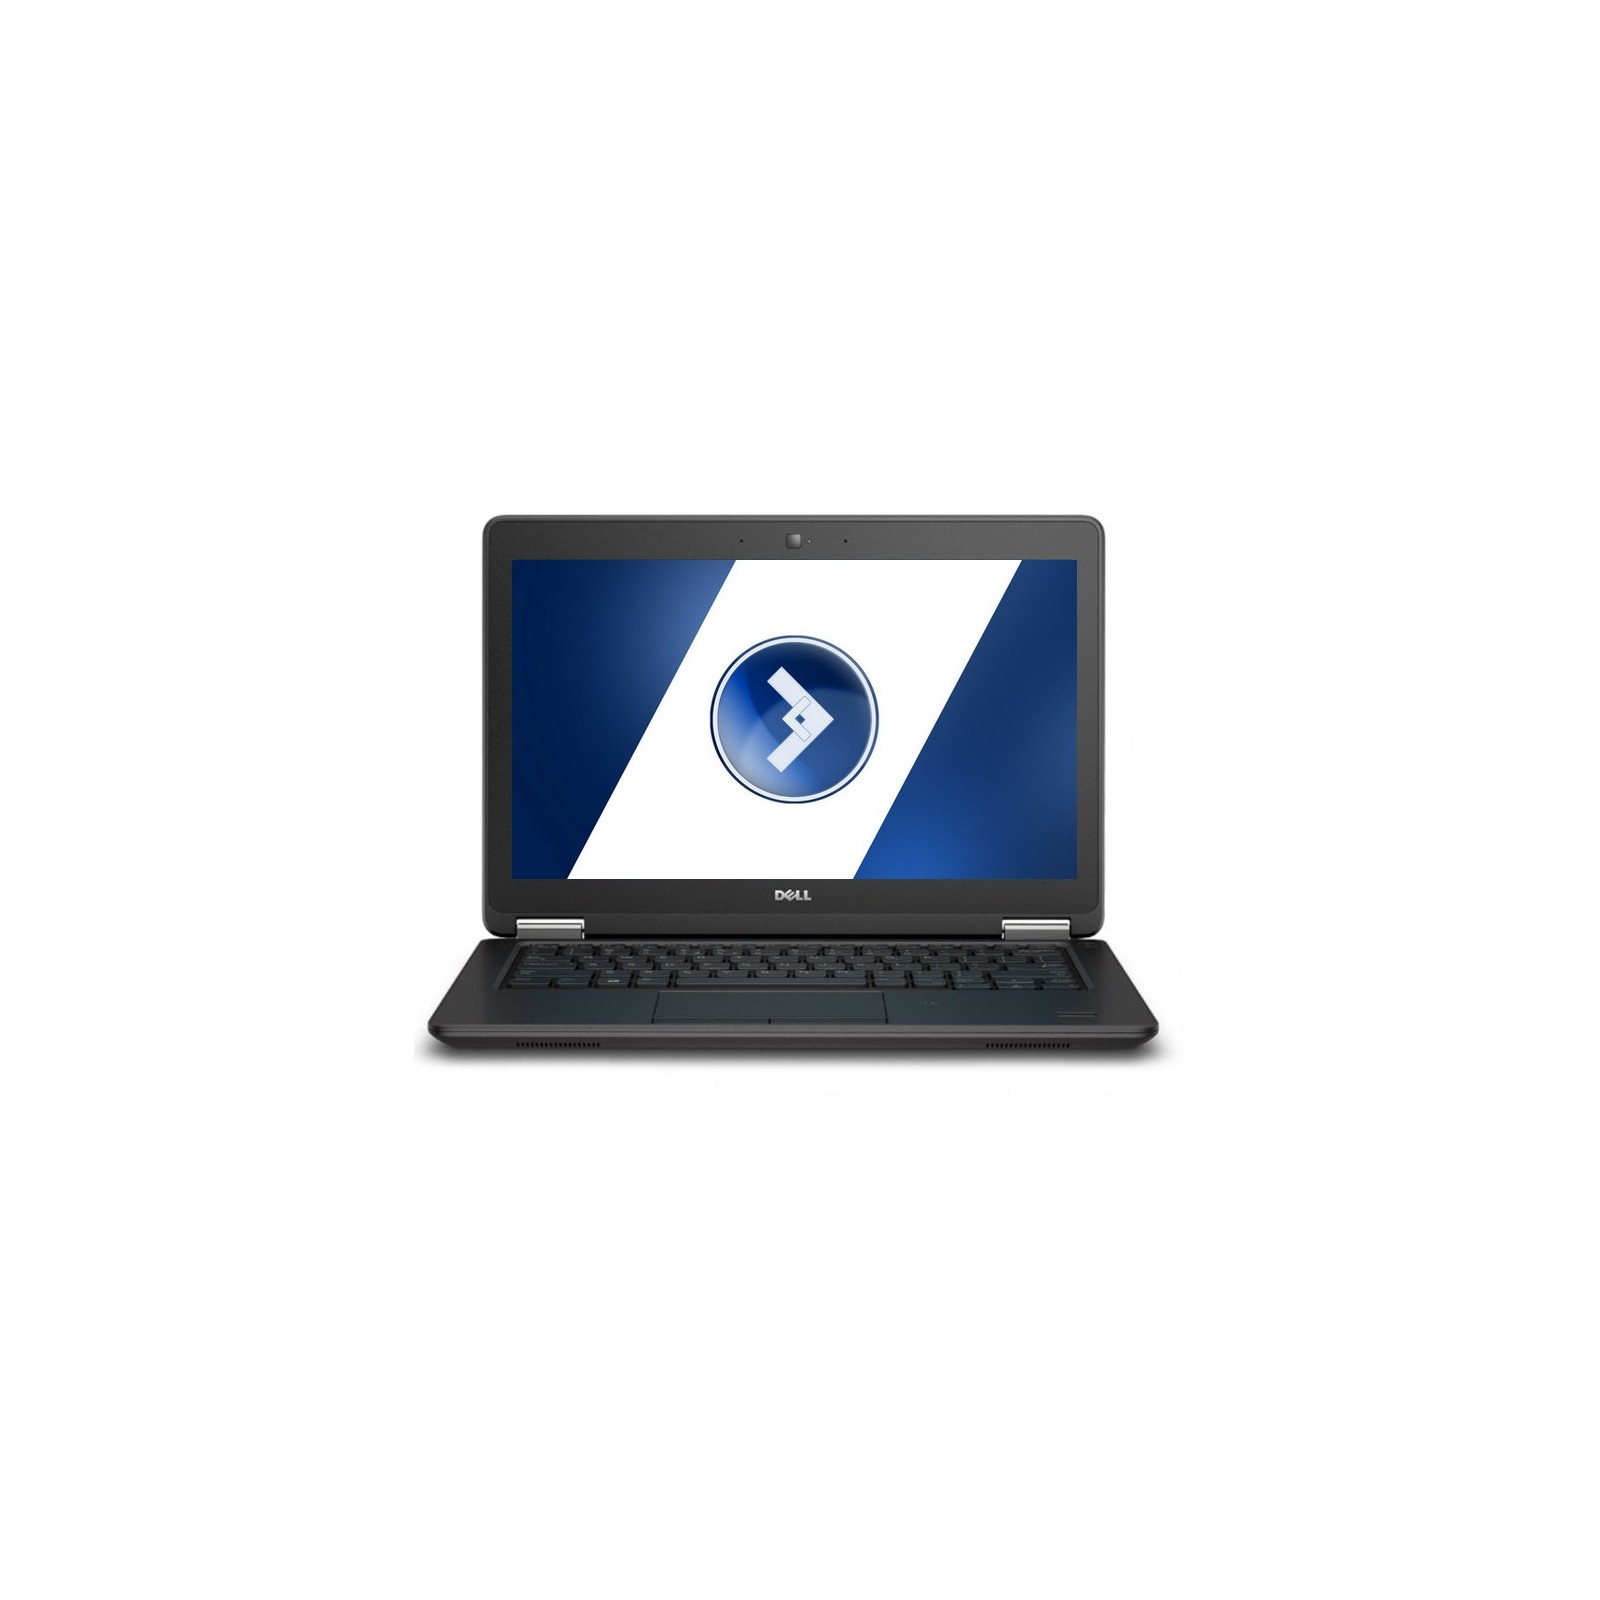 Dell Latitude E7270 i3 8GB RAM 120GB...